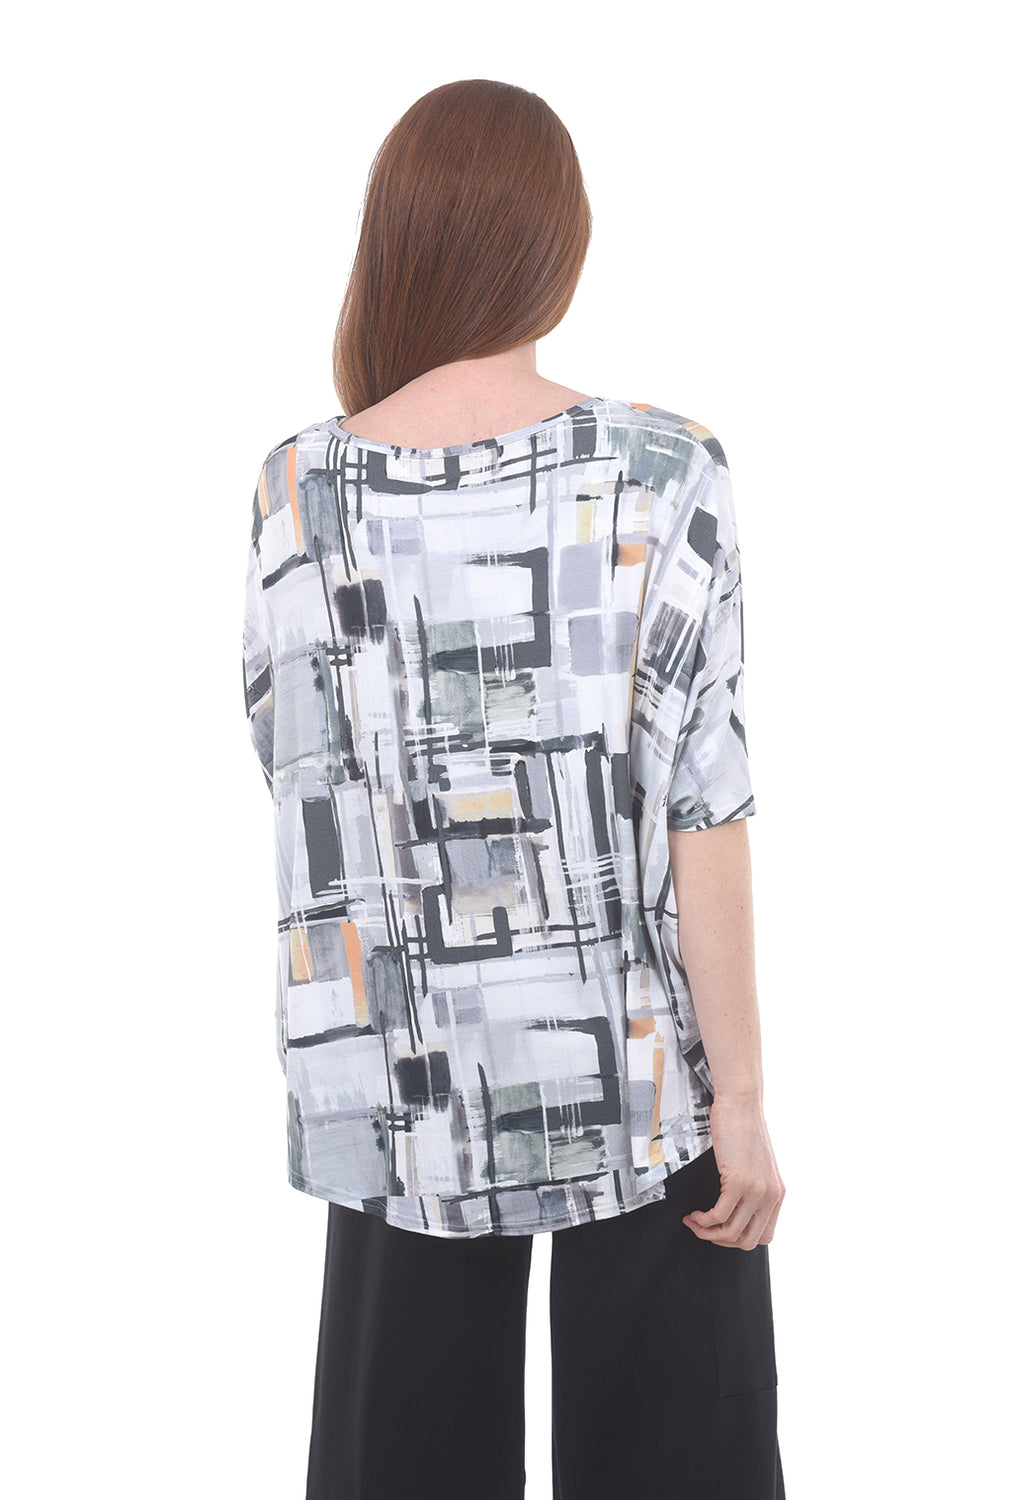 My Soul Batwing Abstract Print Top, Creamsicle